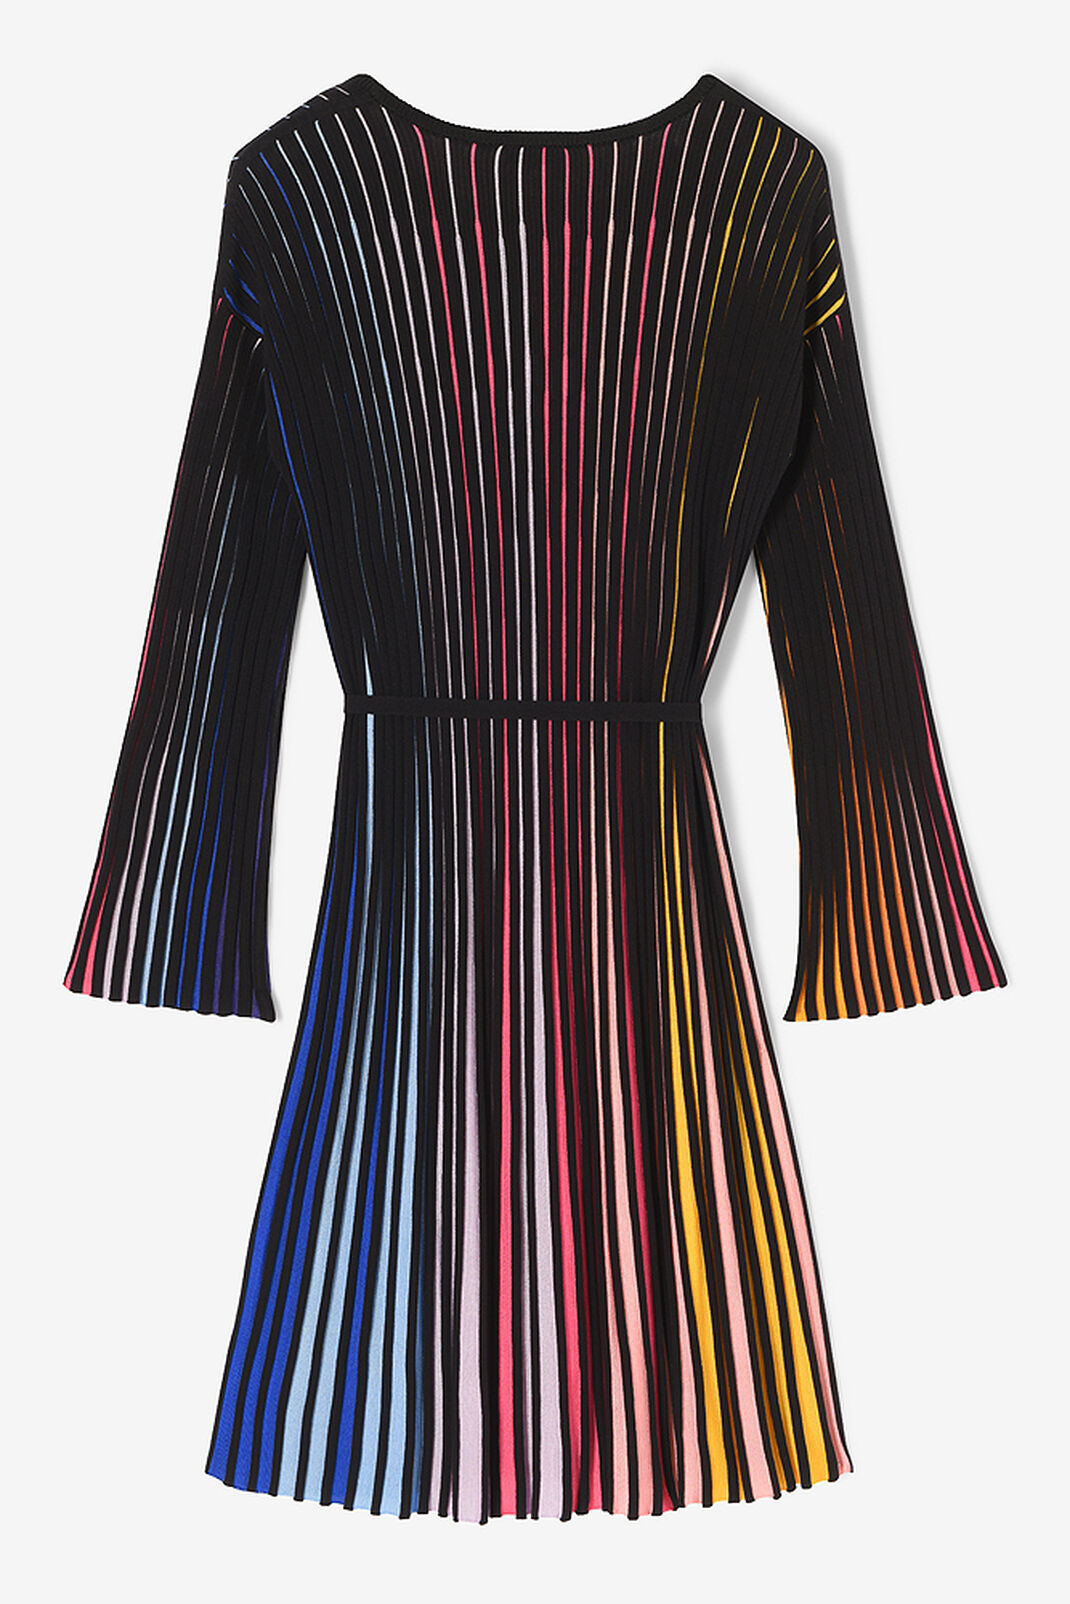 MULTICOLOR Rib-knit color block dress for women KENZO